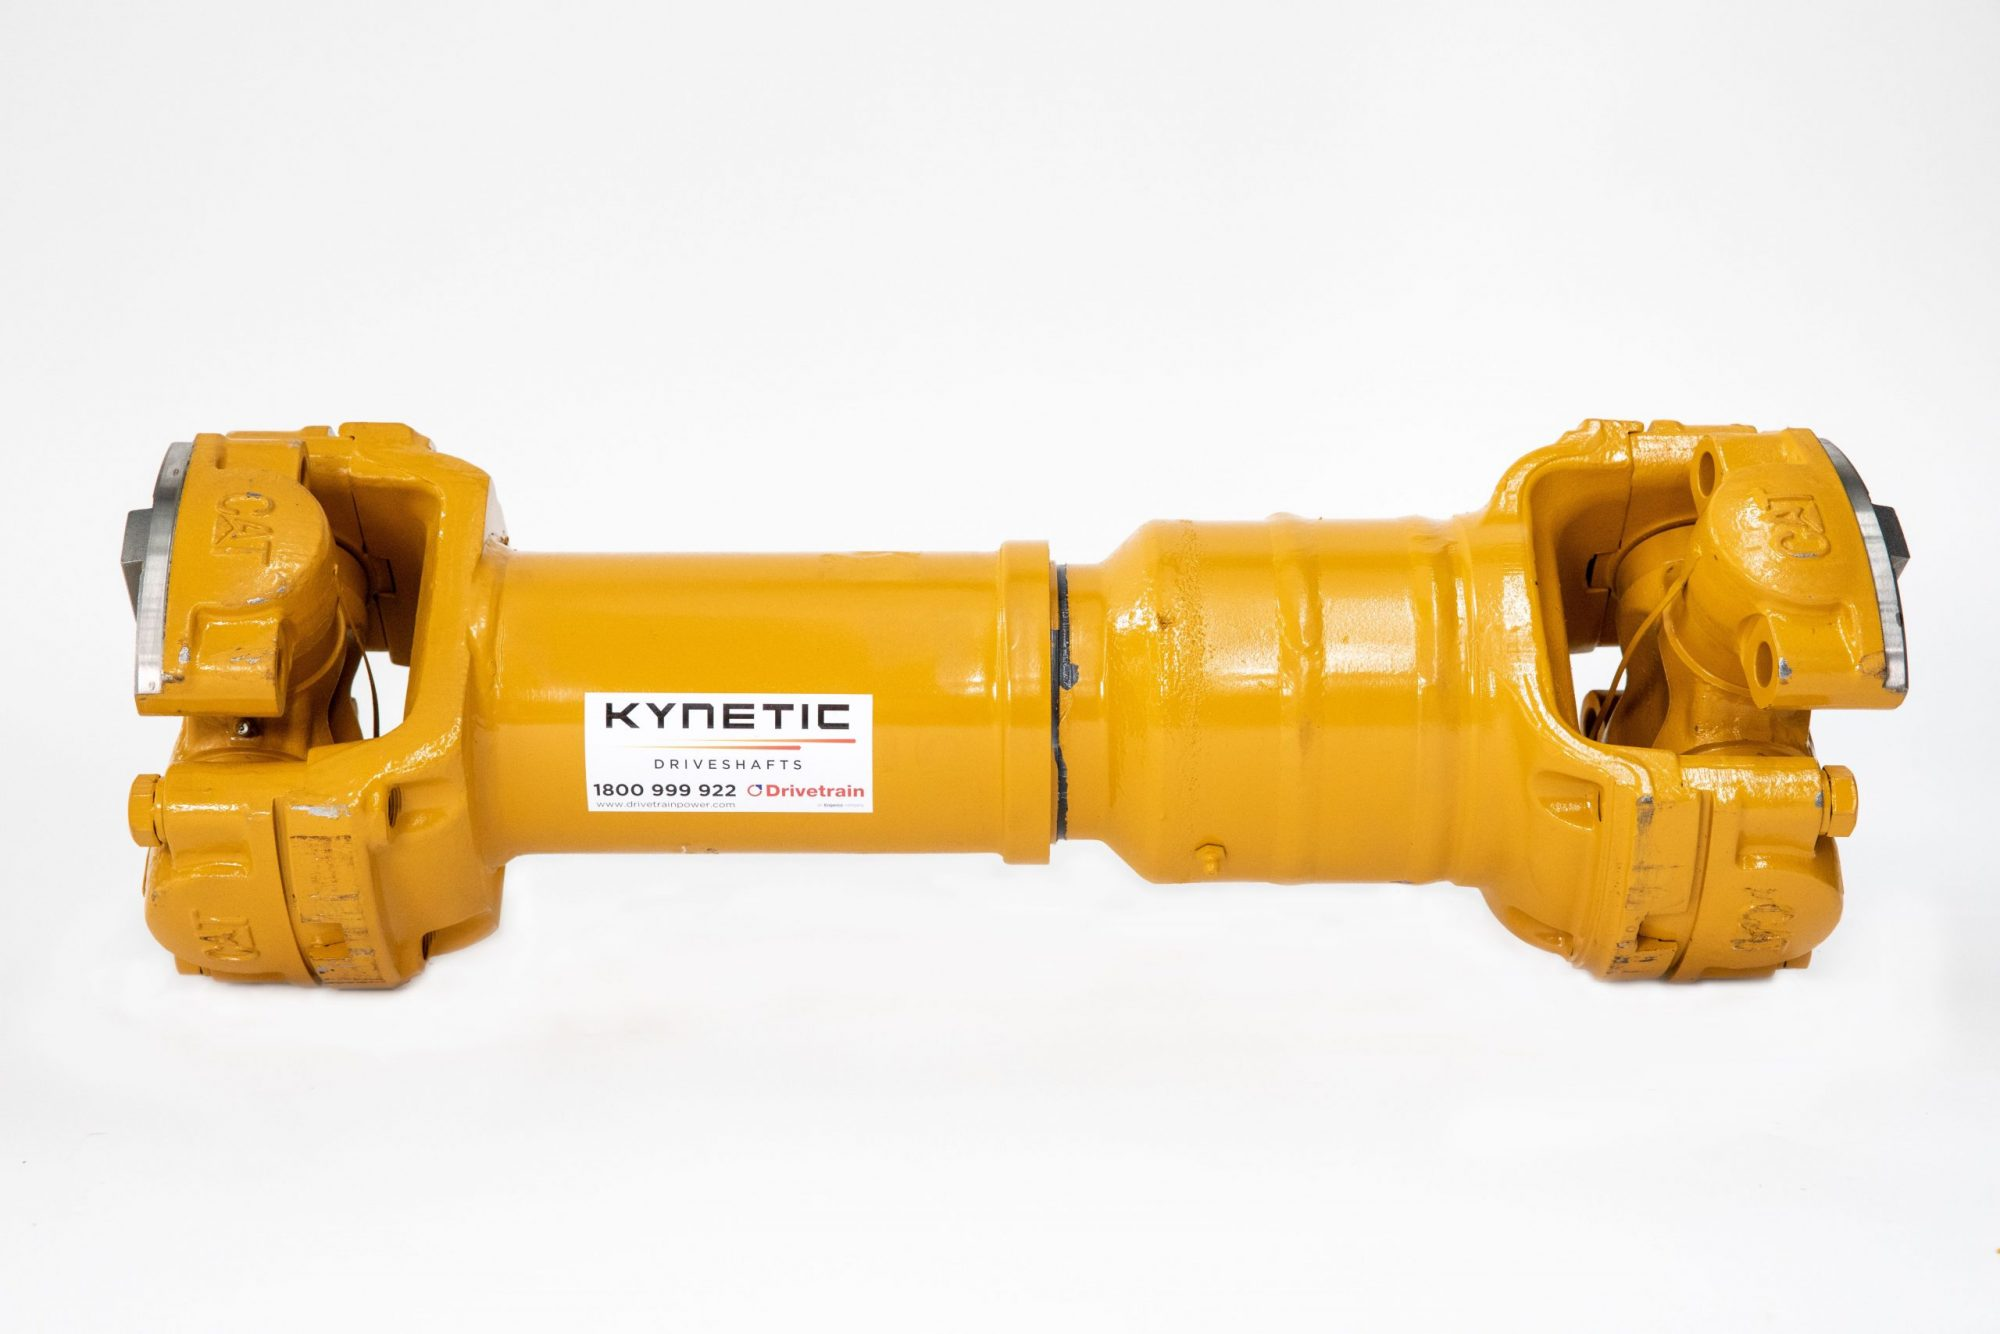 Kynetic Driveshaft